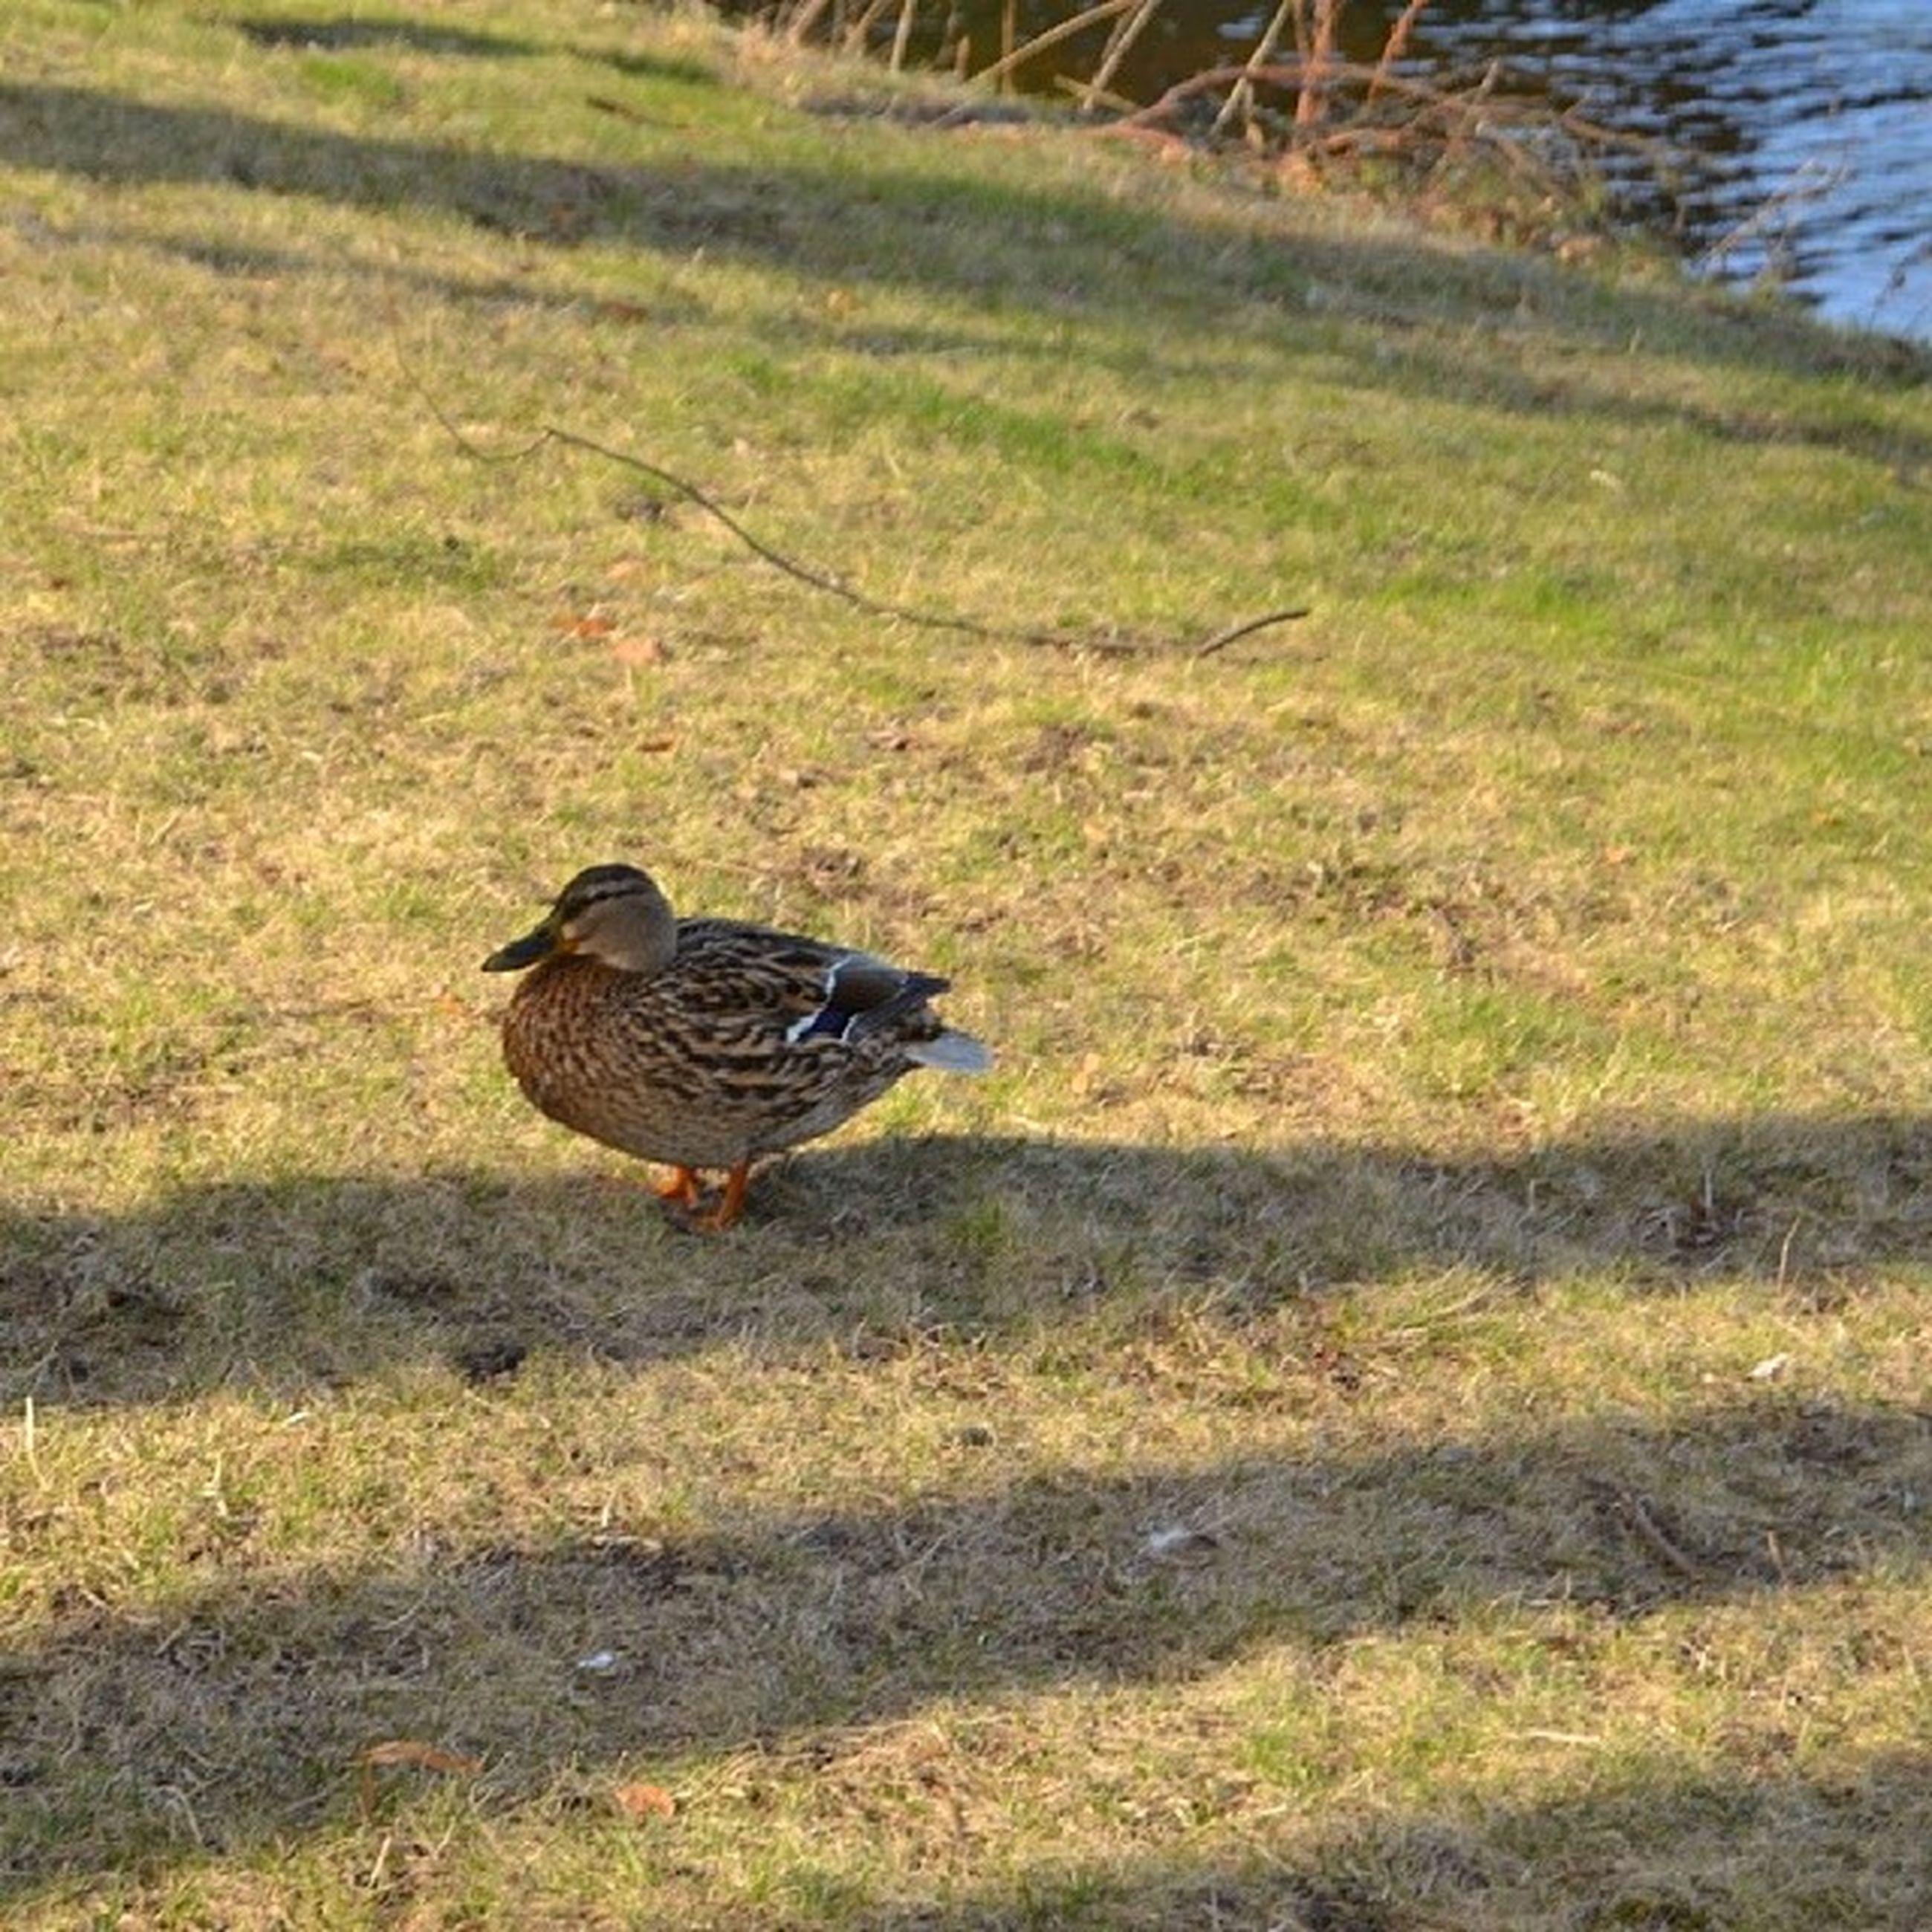 animal themes, animals in the wild, bird, wildlife, grass, one animal, duck, field, high angle view, nature, full length, grassy, two animals, outdoors, day, black color, sunlight, plant, no people, green color